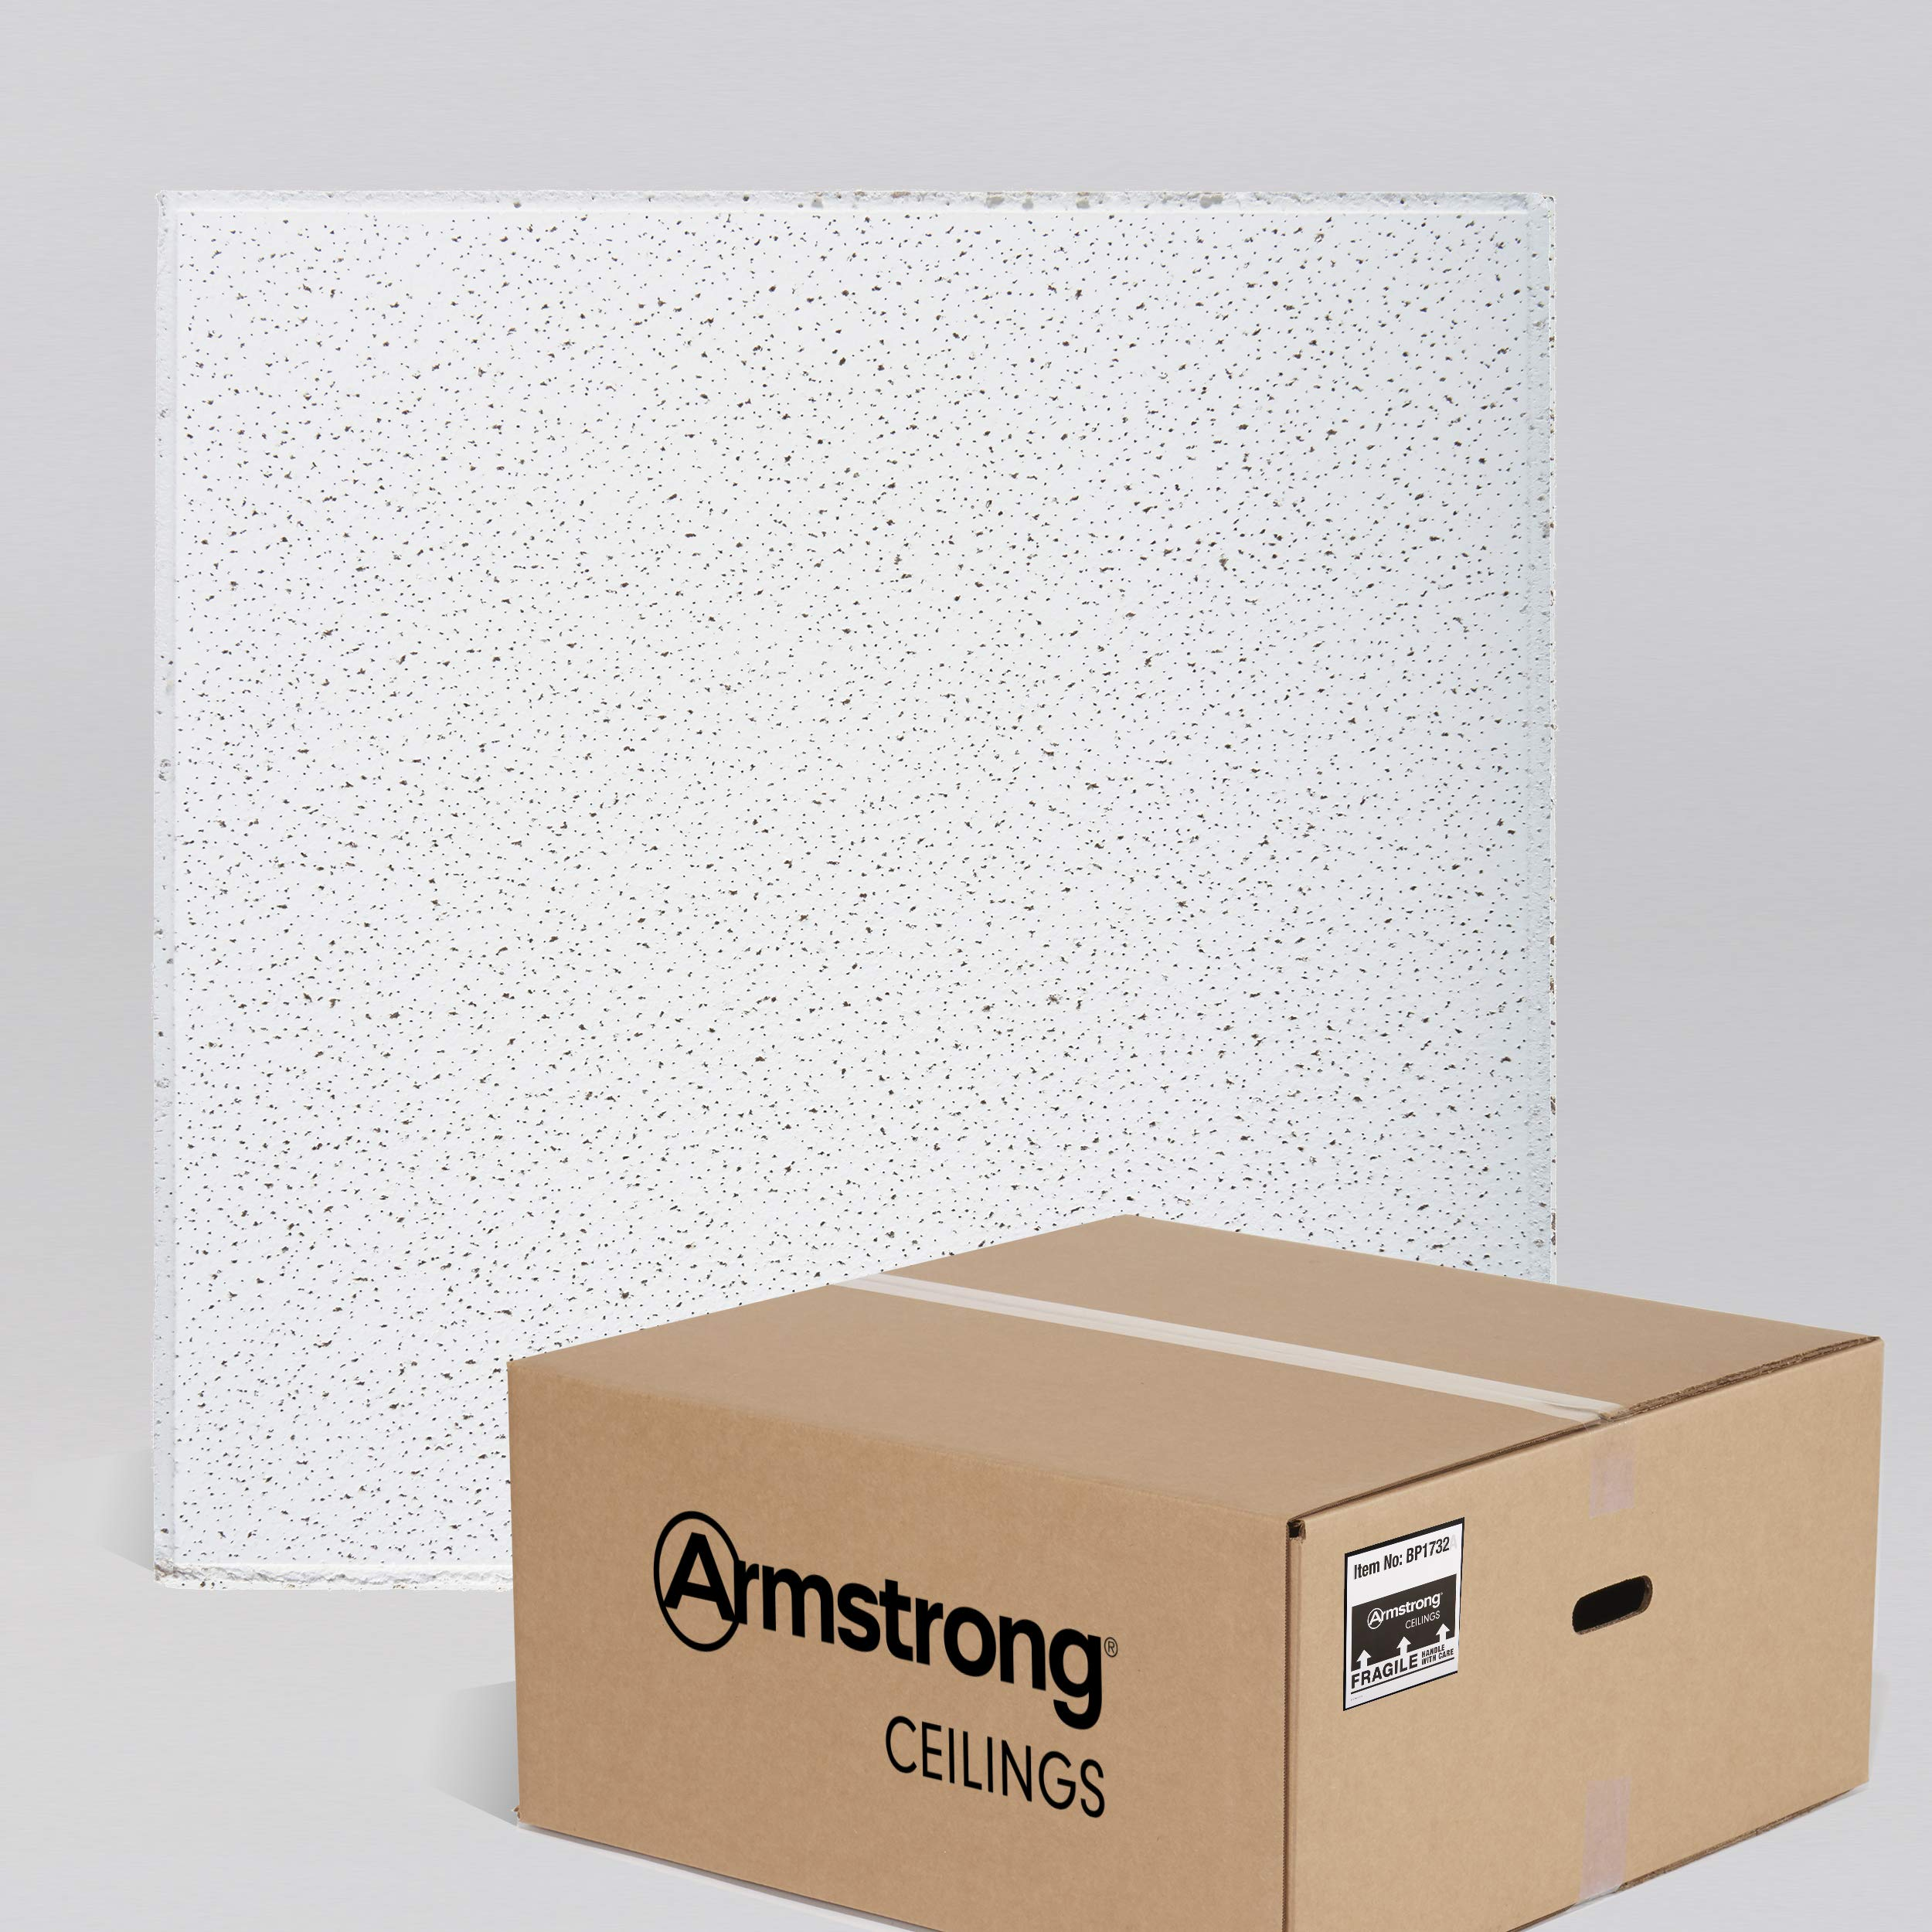 Armstrong Ceiling Tiles; 2x2 Ceiling Tiles - HUMIGUARD Plus Acoustic Ceilings for Suspended Ceiling Grid; Drop Ceiling Tiles Direct from the Manufacturer; FINE FISSURED Item 1732 - 16pc White Tegular by Armstrong